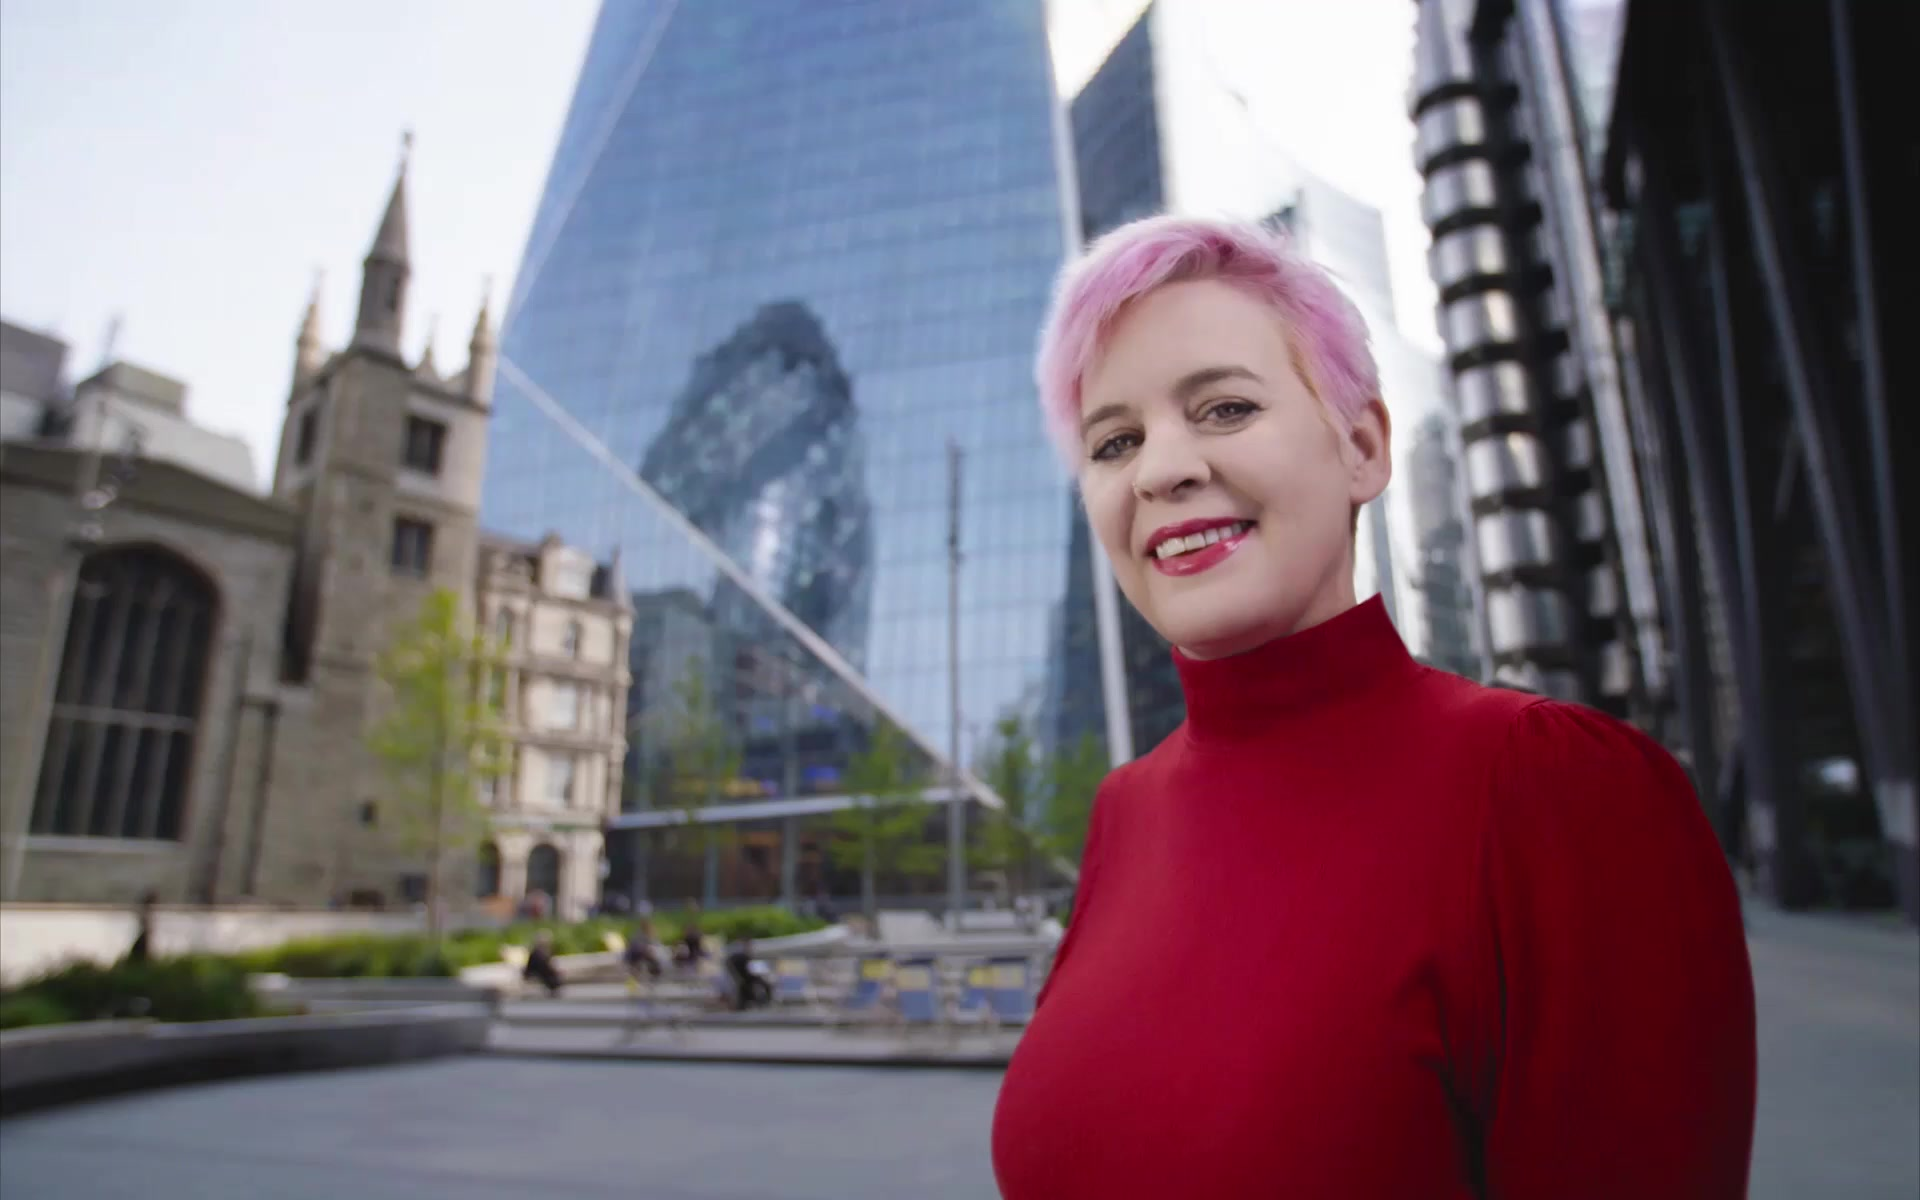 Woman outside Aviva headquarters in London smiling at the camera